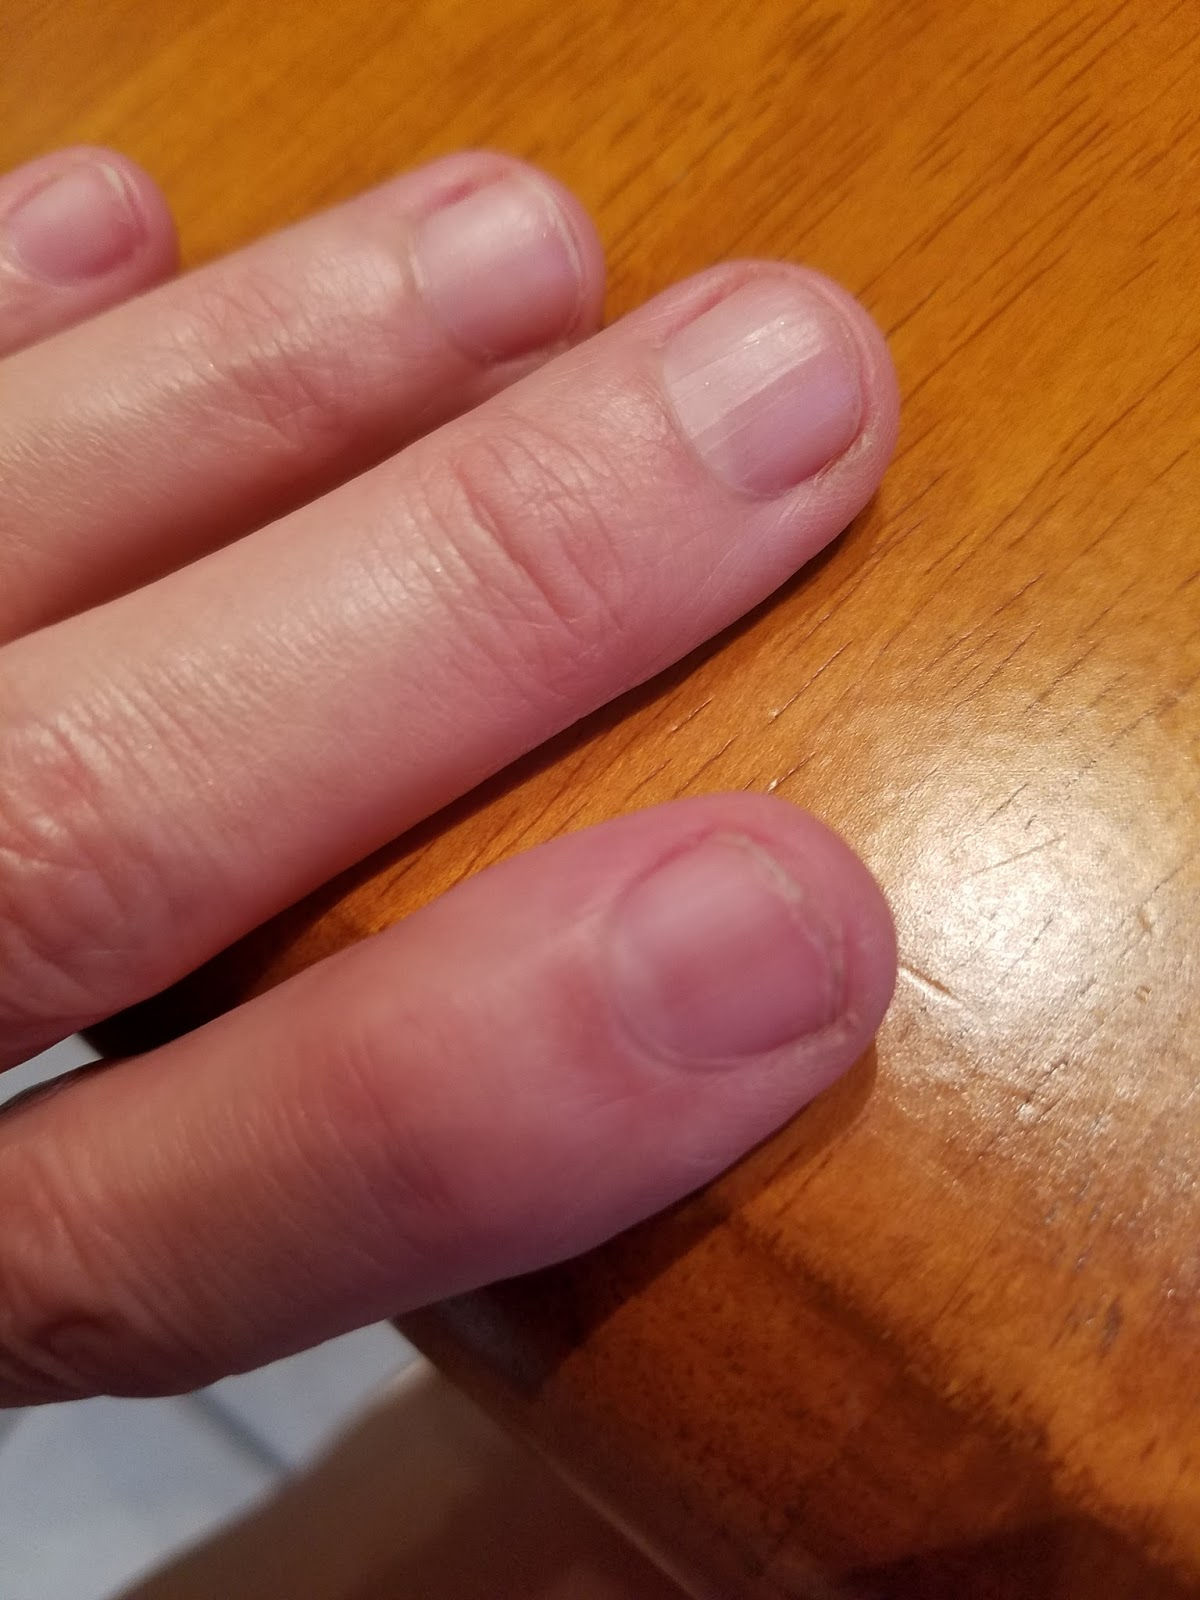 BLOGSGOTHEART: Do your fingernails peel and crack? B12 Deficiency Nails